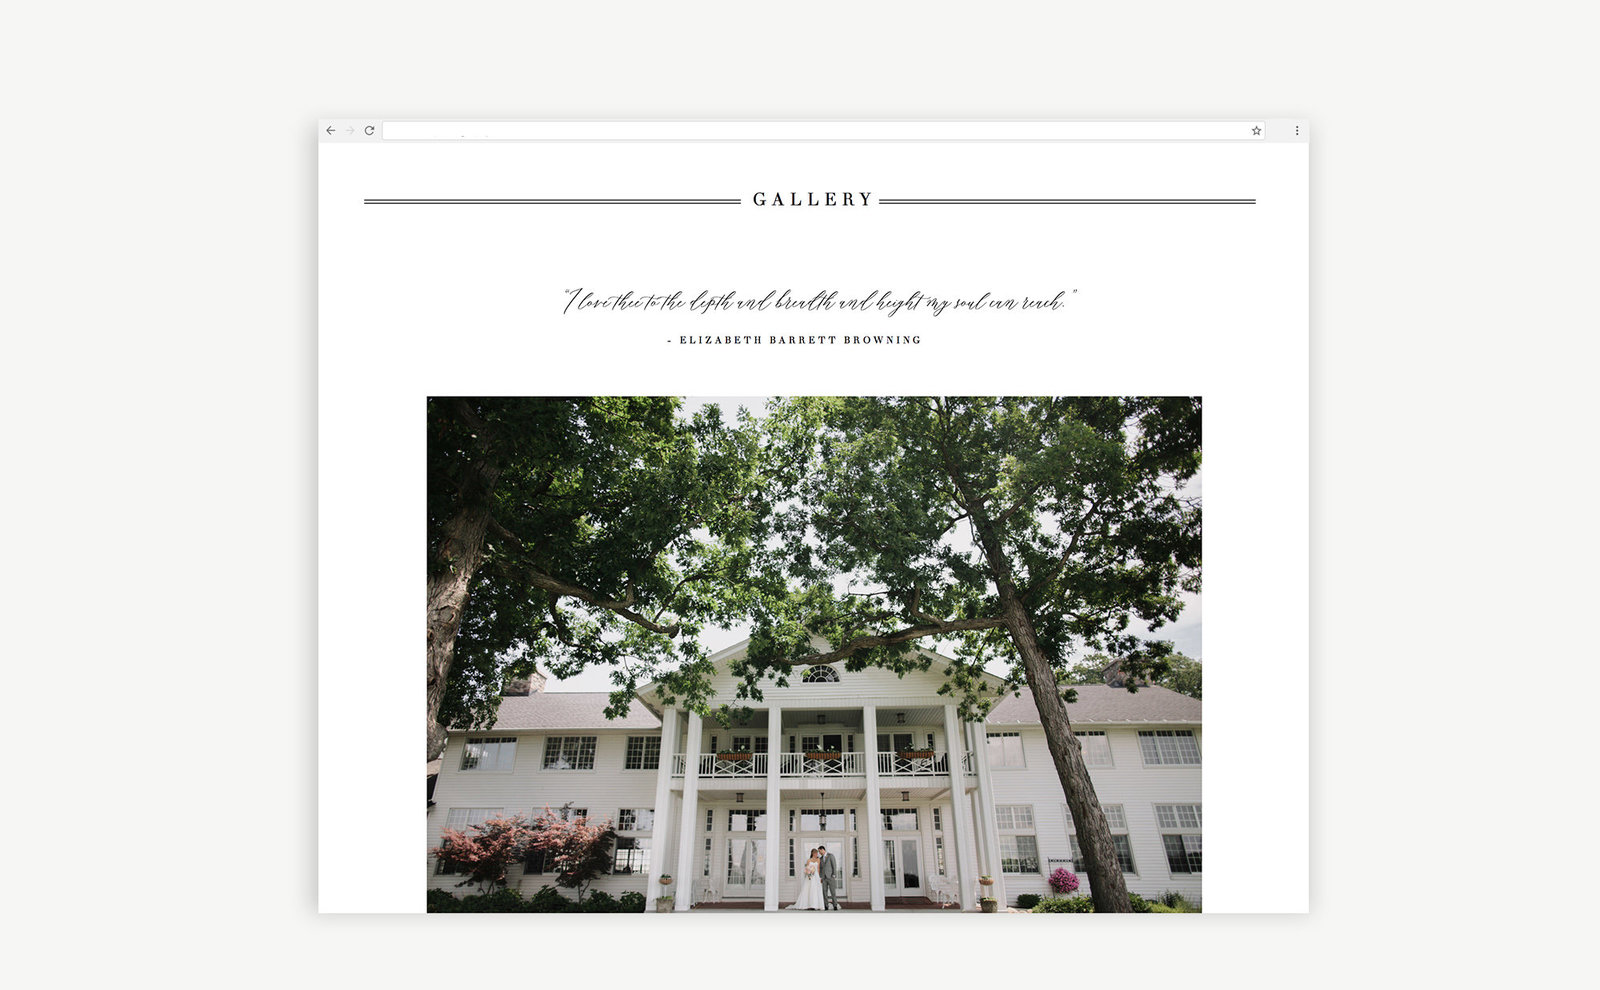 showit-website-branding-for-wedding-businesses-festoons-04